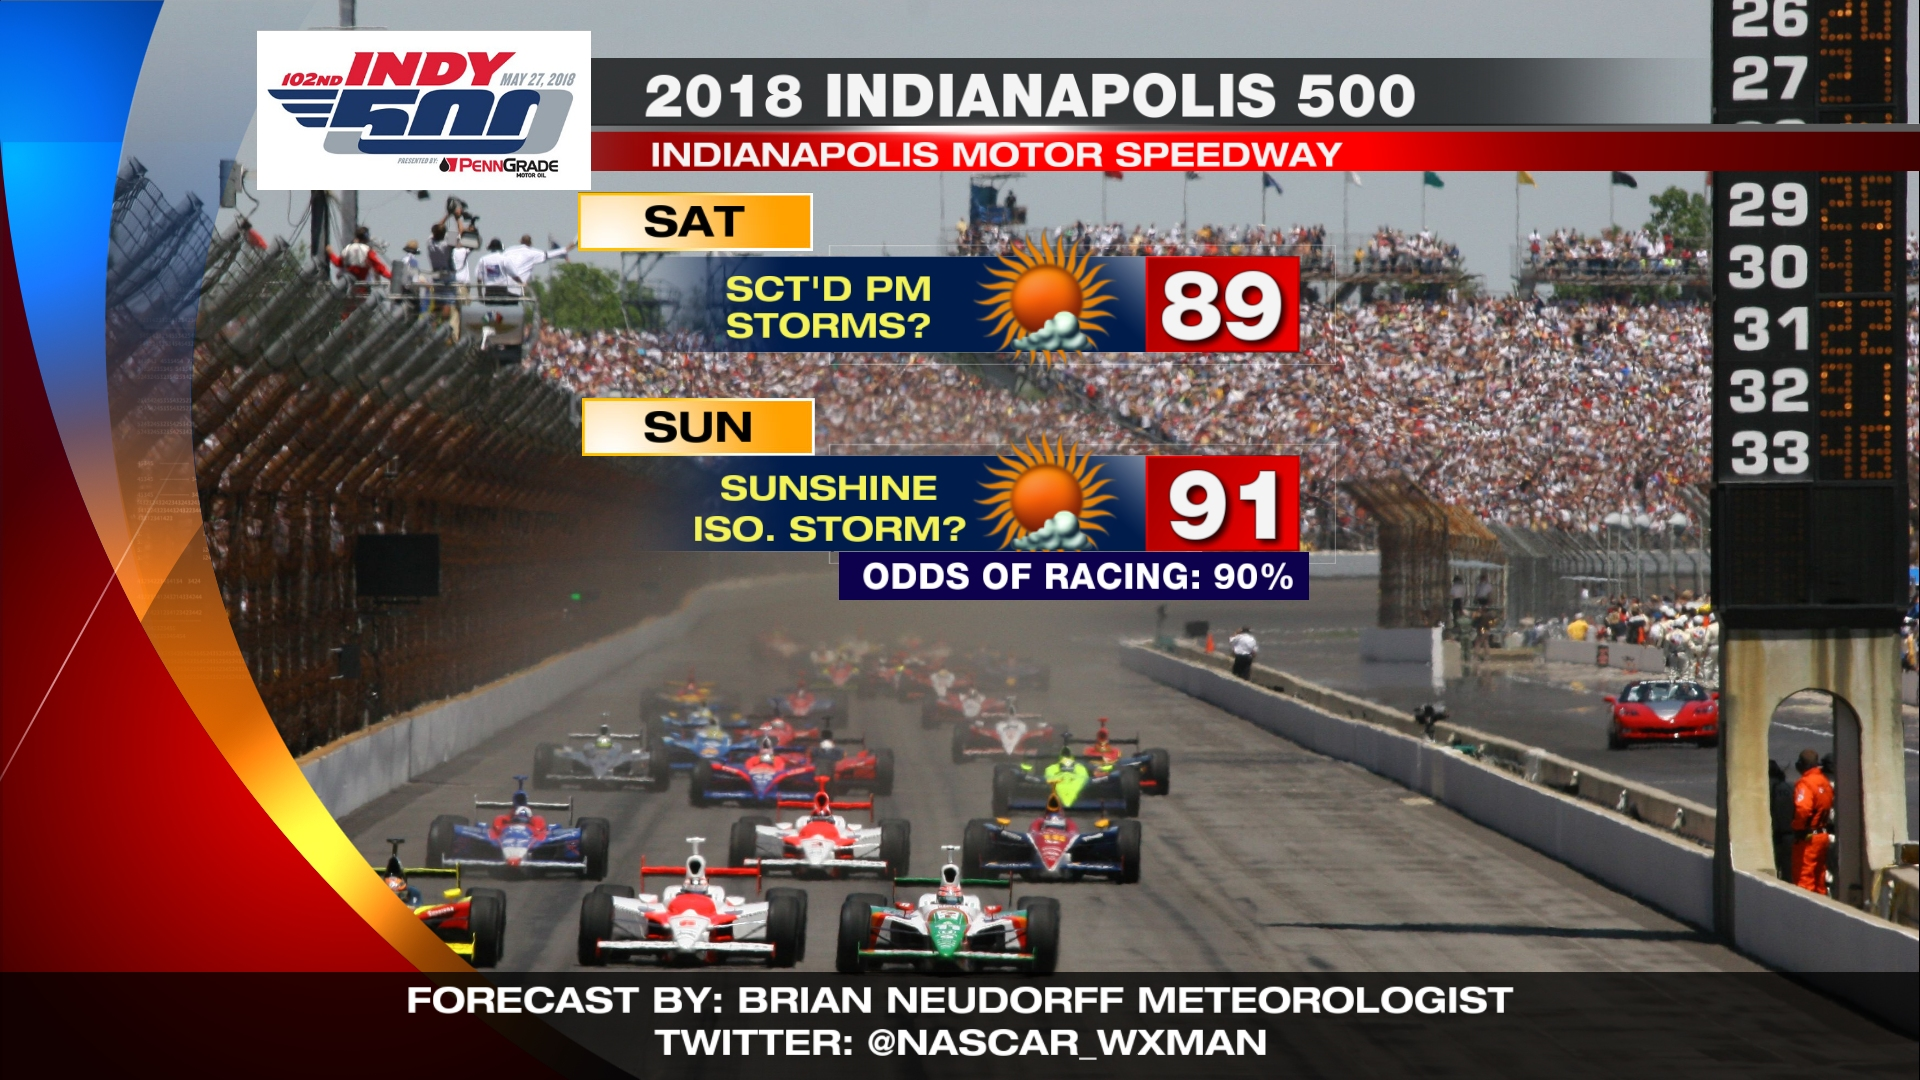 INDIANAPOLIS 500 WEATHER FORECAST: